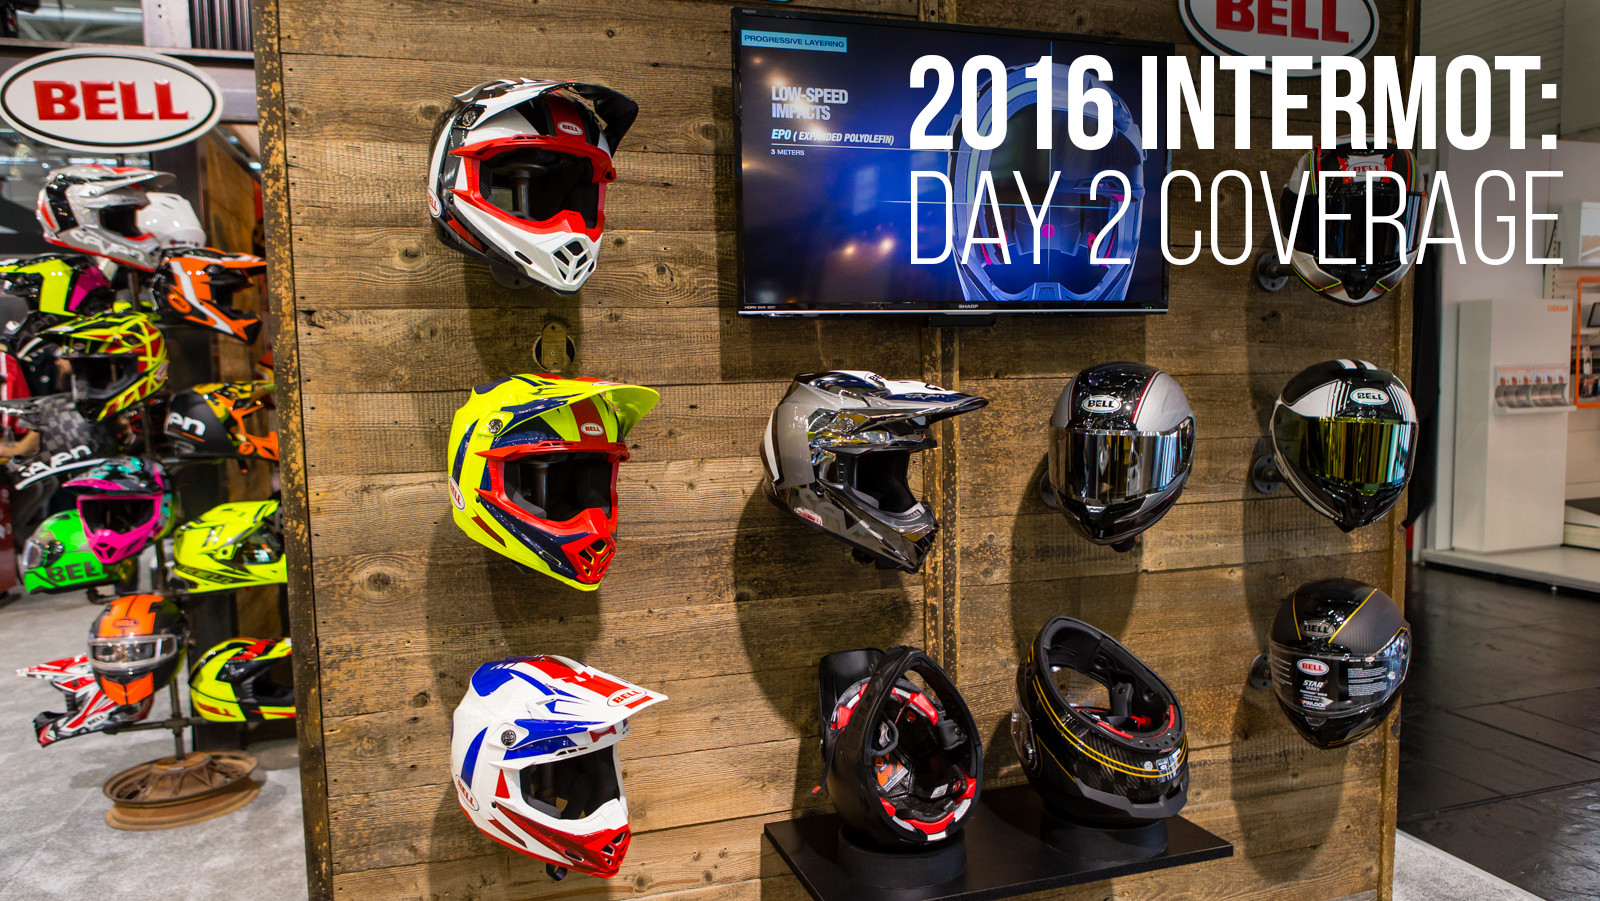 2016 INTERMOT: Day 2 Coverage - Bell Helmets - 2016 INTERMOT: Day 2 Coverage - Motocross Pictures - Vital MX